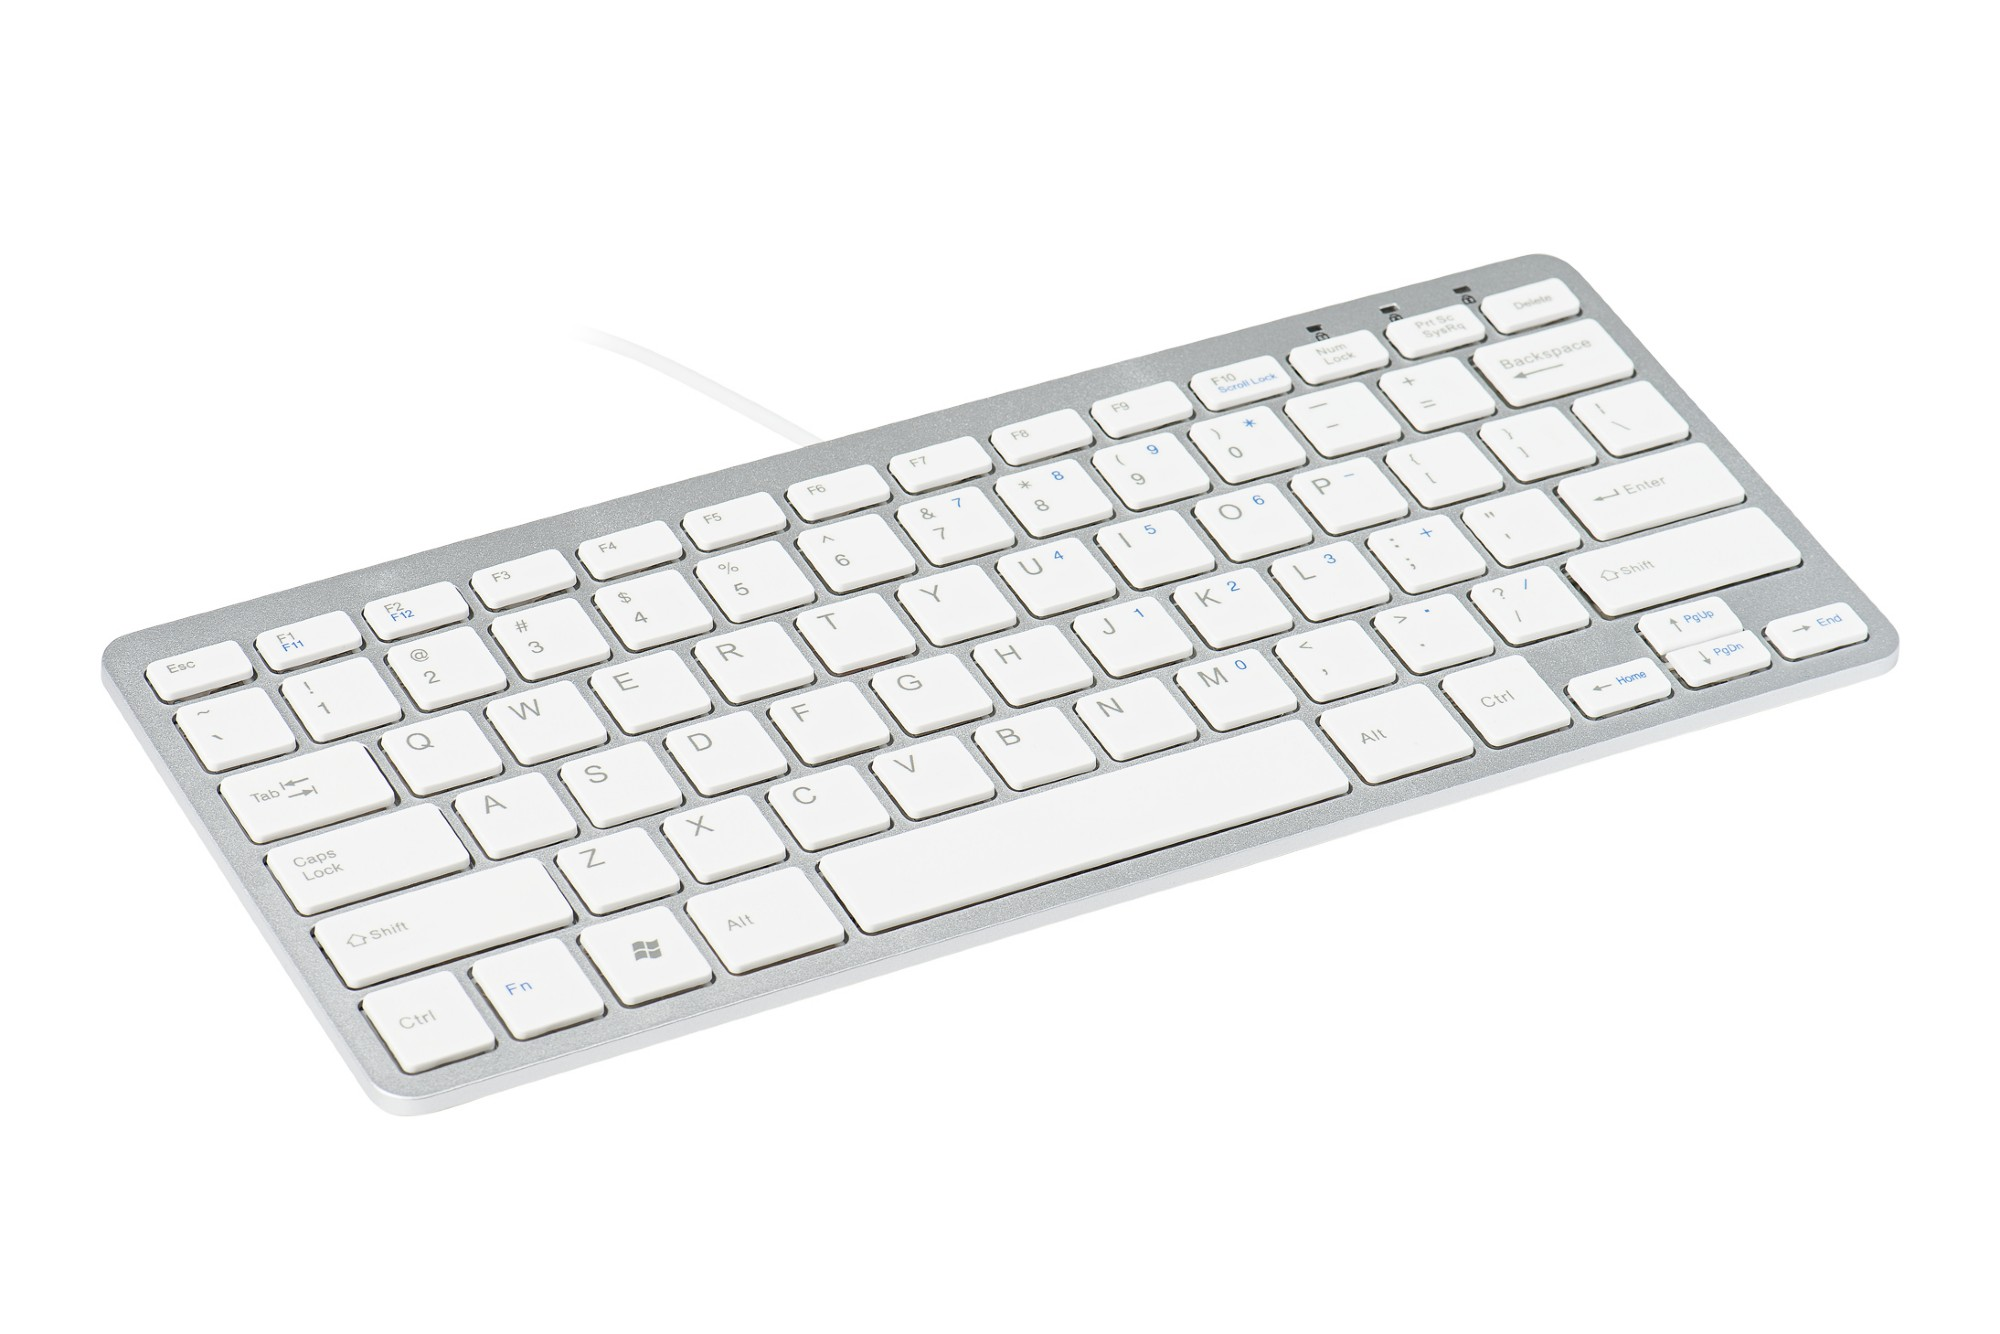 R-GO TOOLS RGOECUKW COMPACT KEYBOARD, QWERTY (UK), WHITE, WIRED